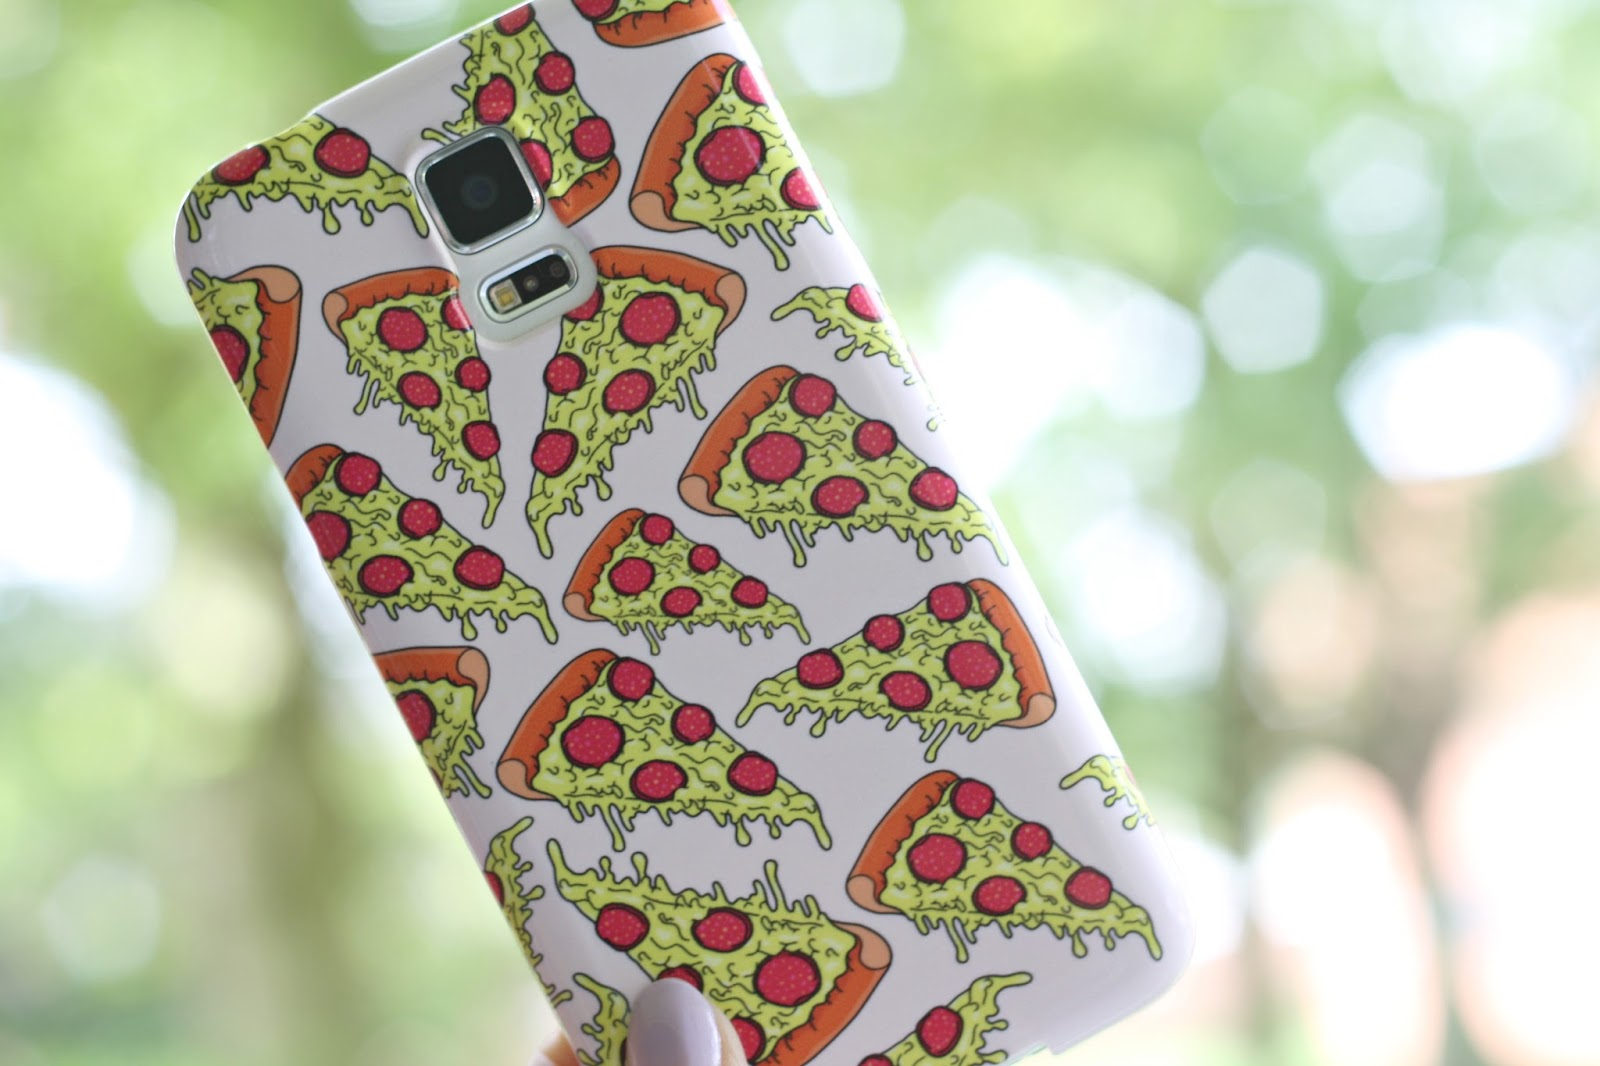 Pizza-phone-case-cover-iphone-samsung-galaxy-etsy